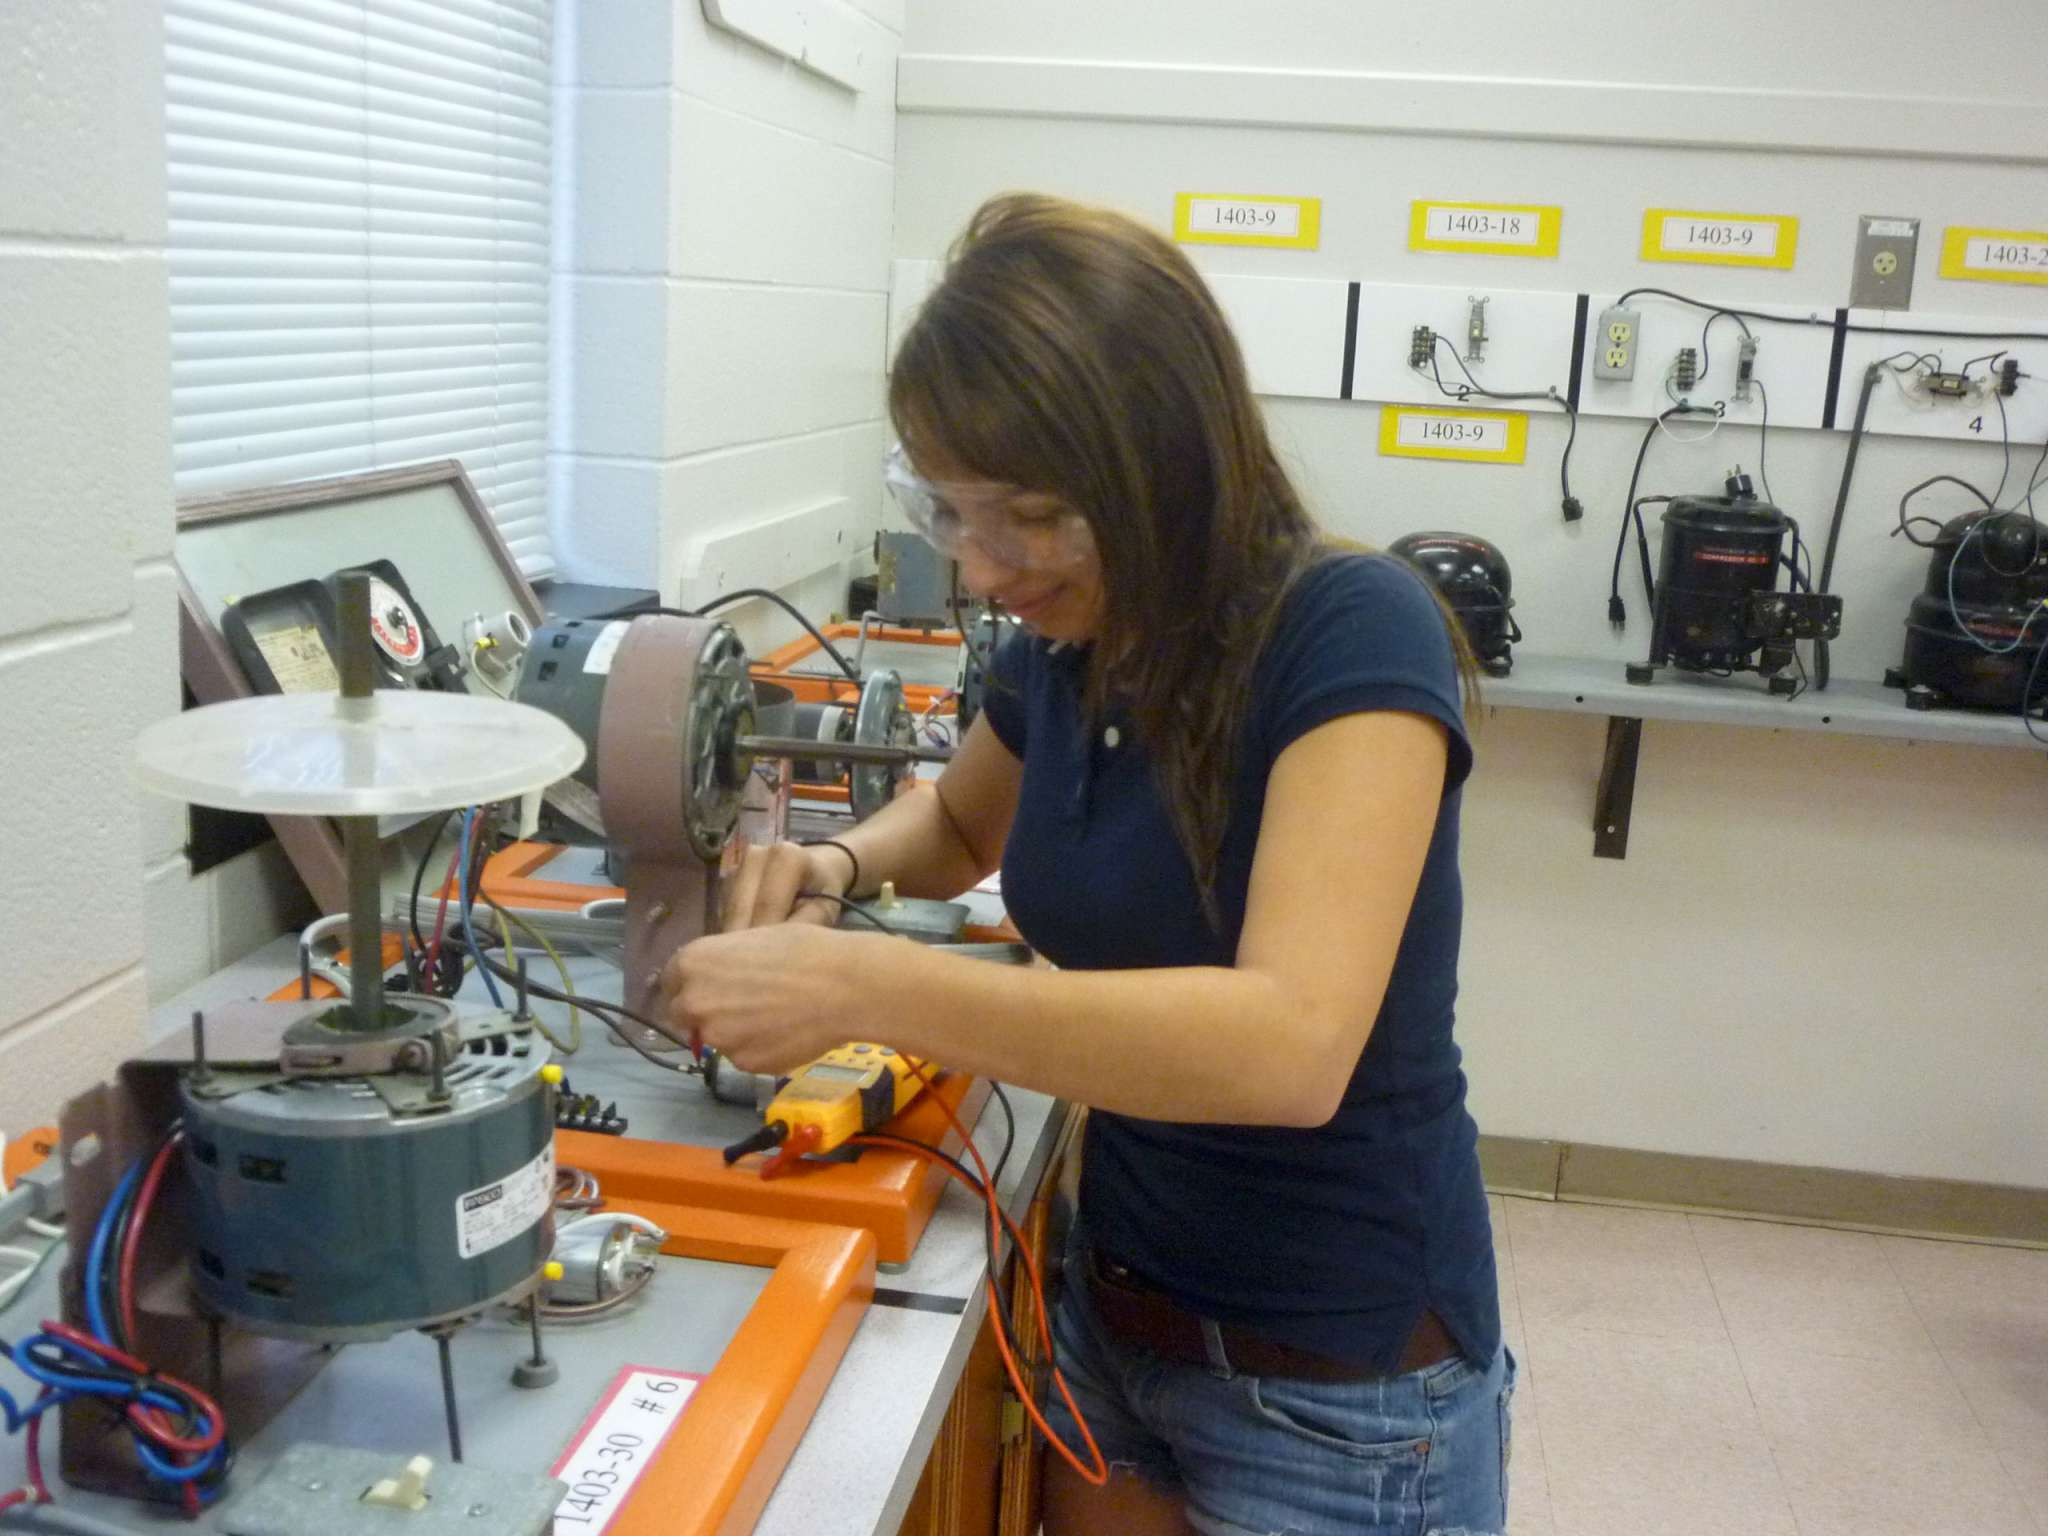 student measuring compressor with meter